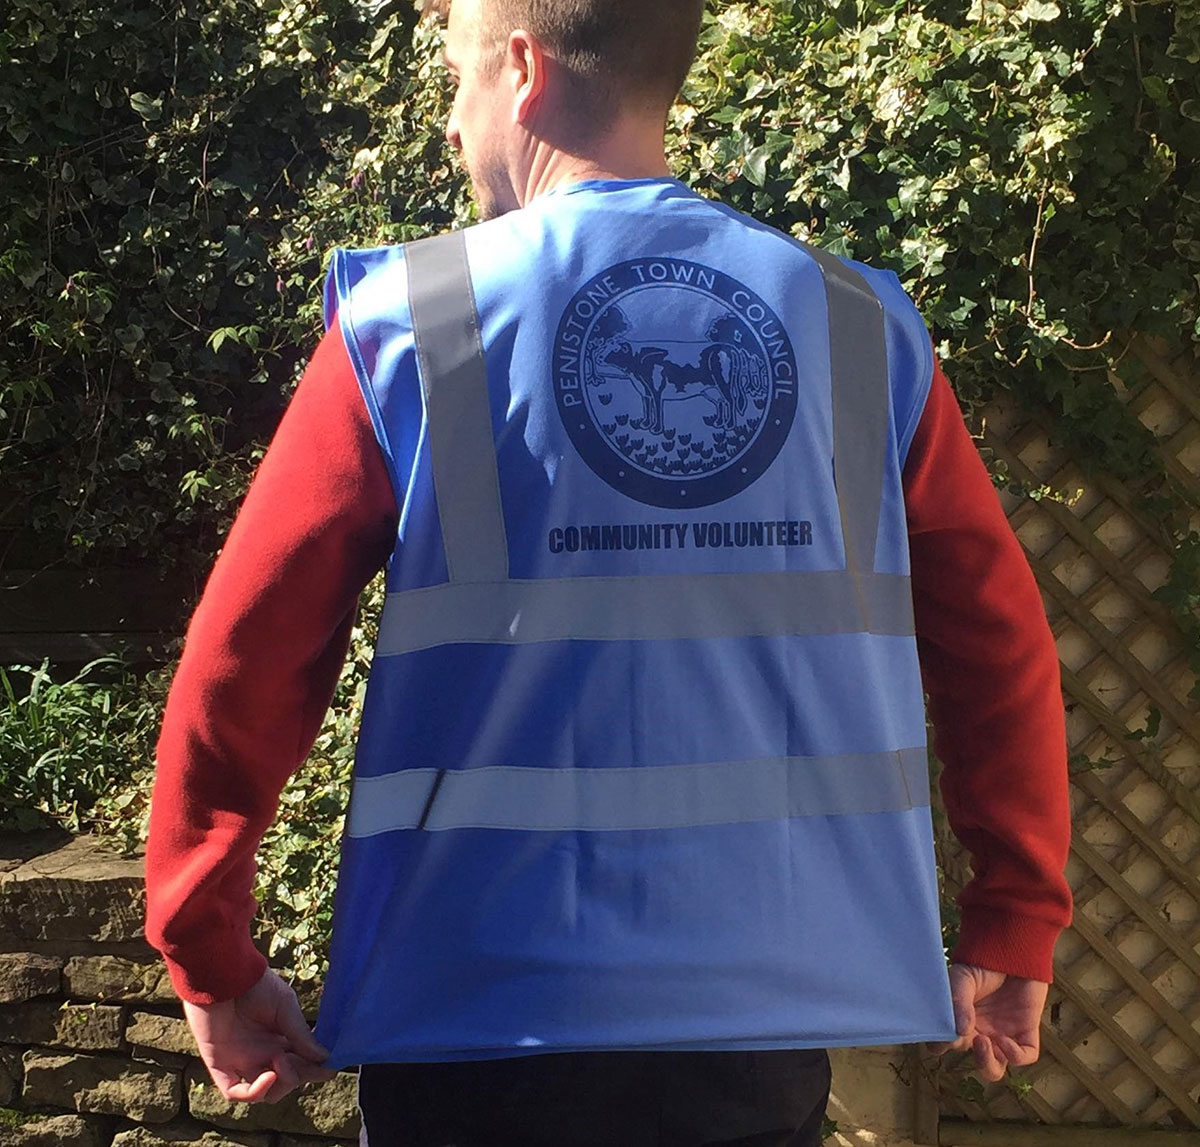 Image of vest to be worn by volunteers